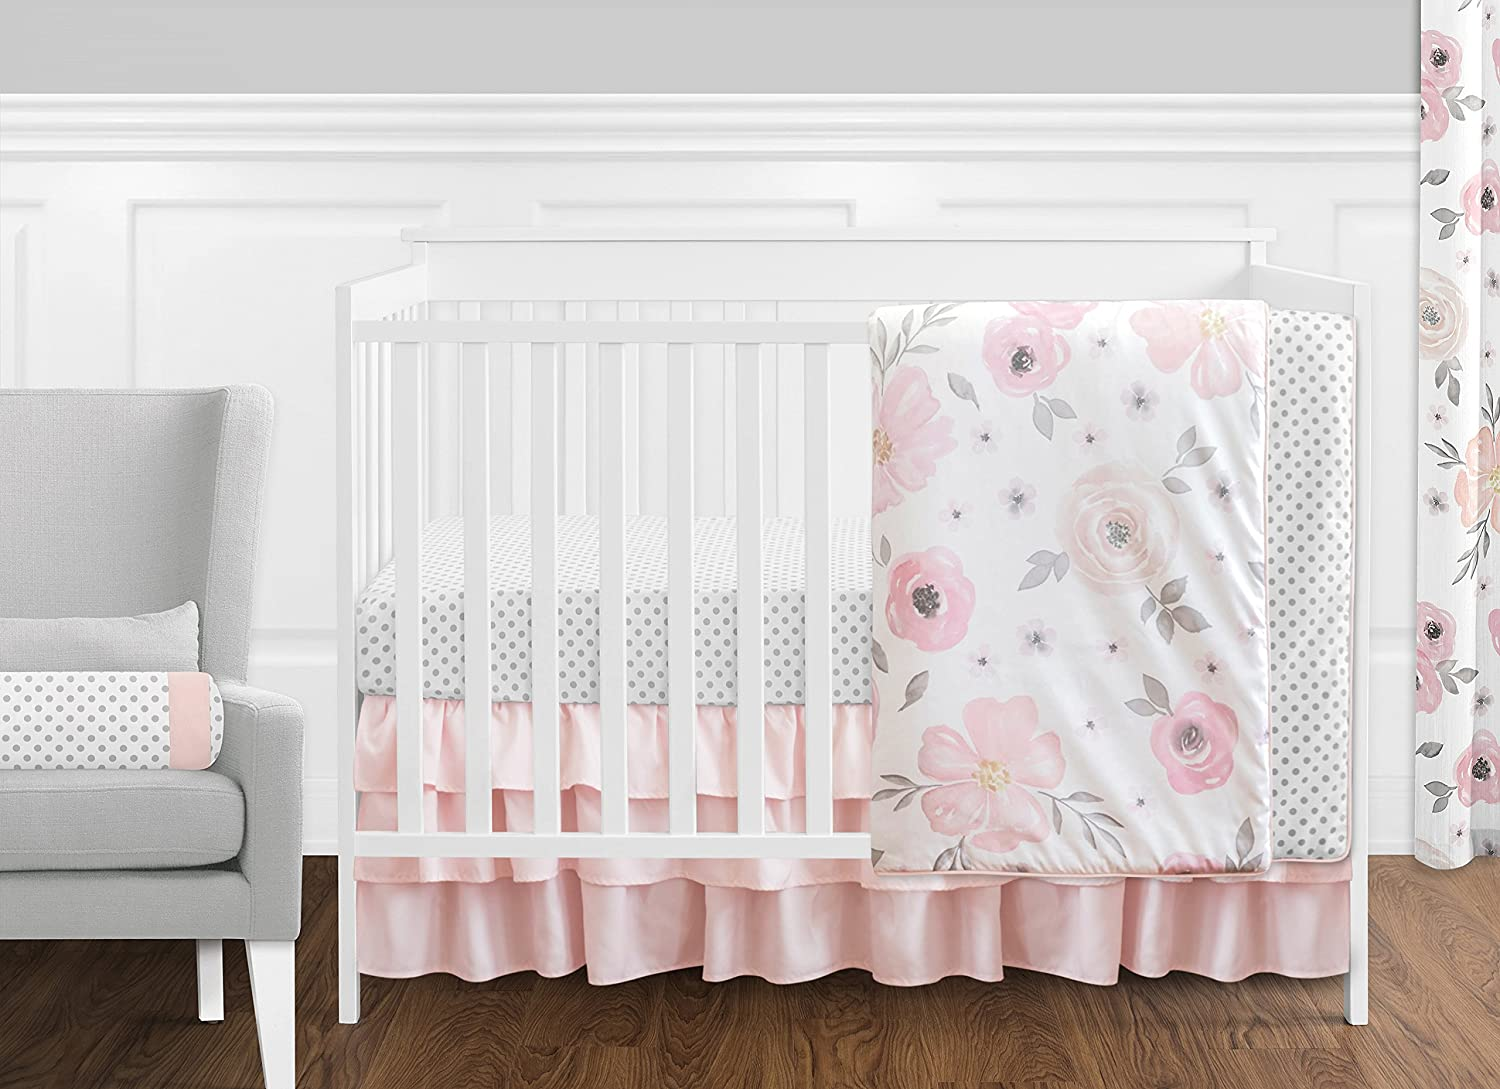 Grey and White Star and Moon Celestial Baby Girl Crib Bedding Set Without Bumper Sweet JoJo Designs 4 Piece Blush Pink Gold